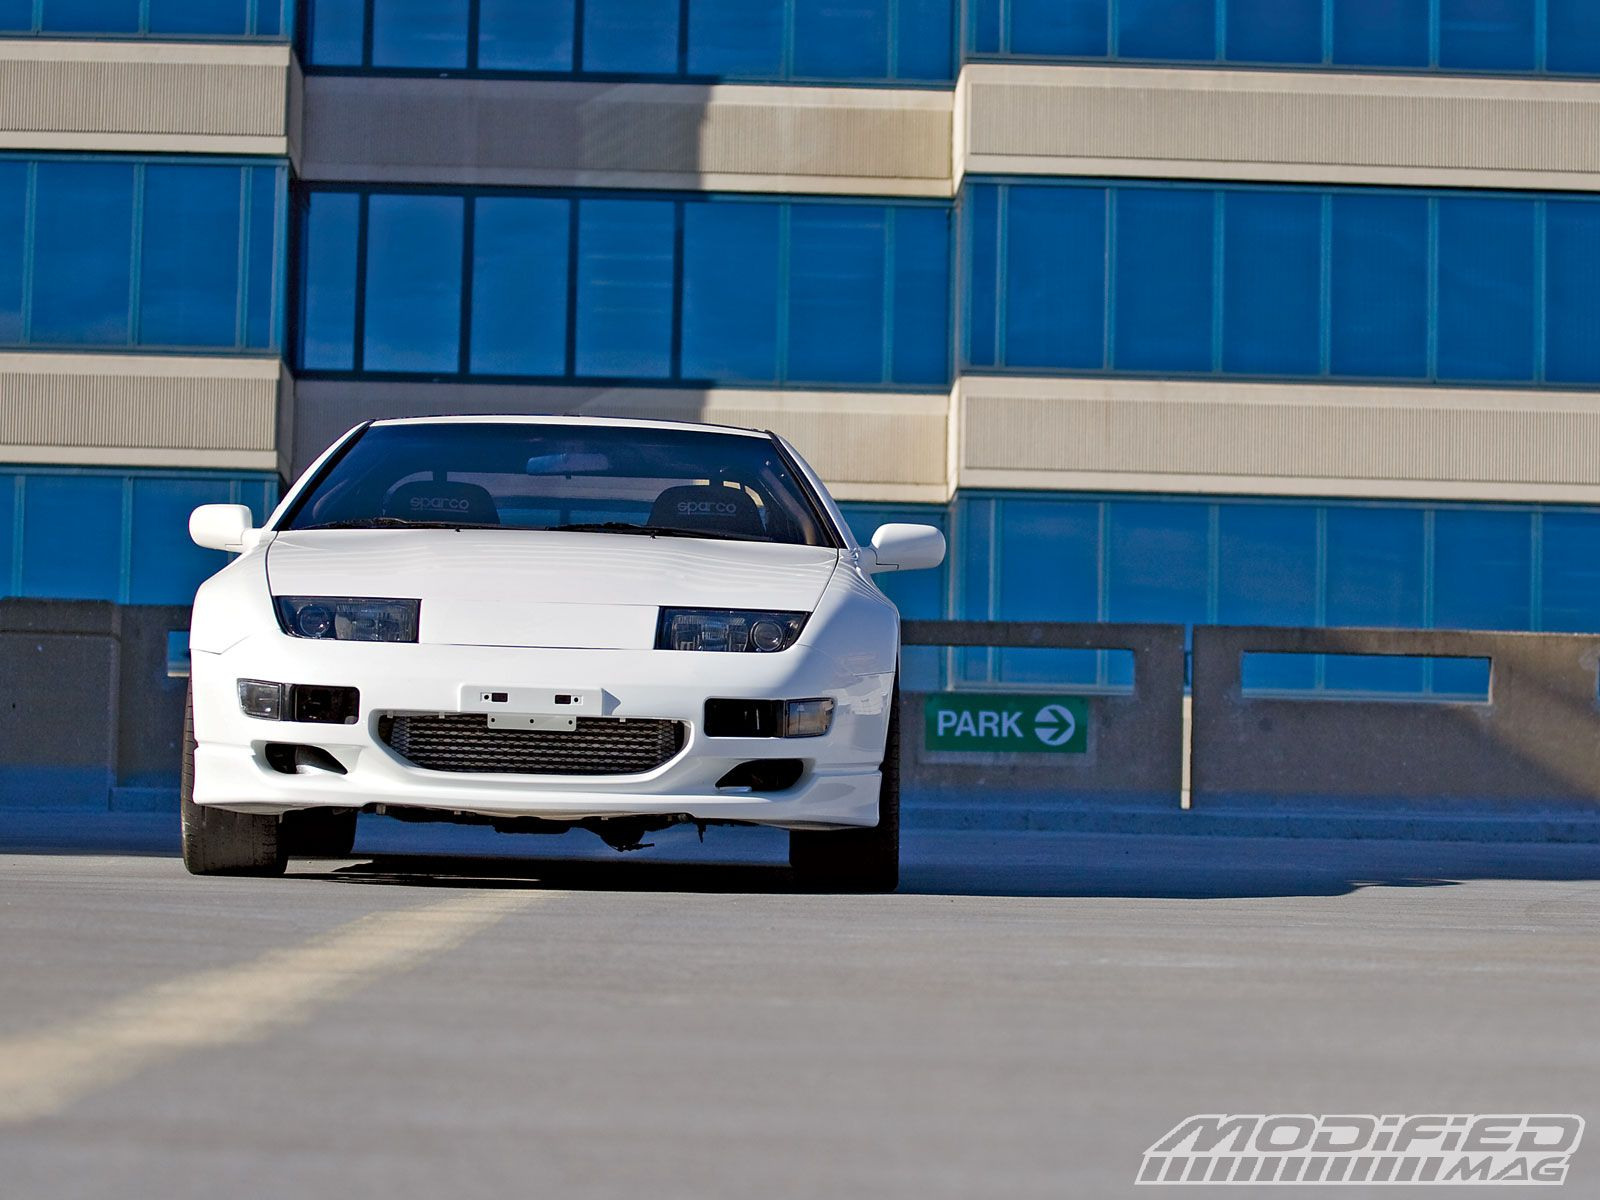 1990 Nissan 300ZX Twin Turbo Desktop wallpaper